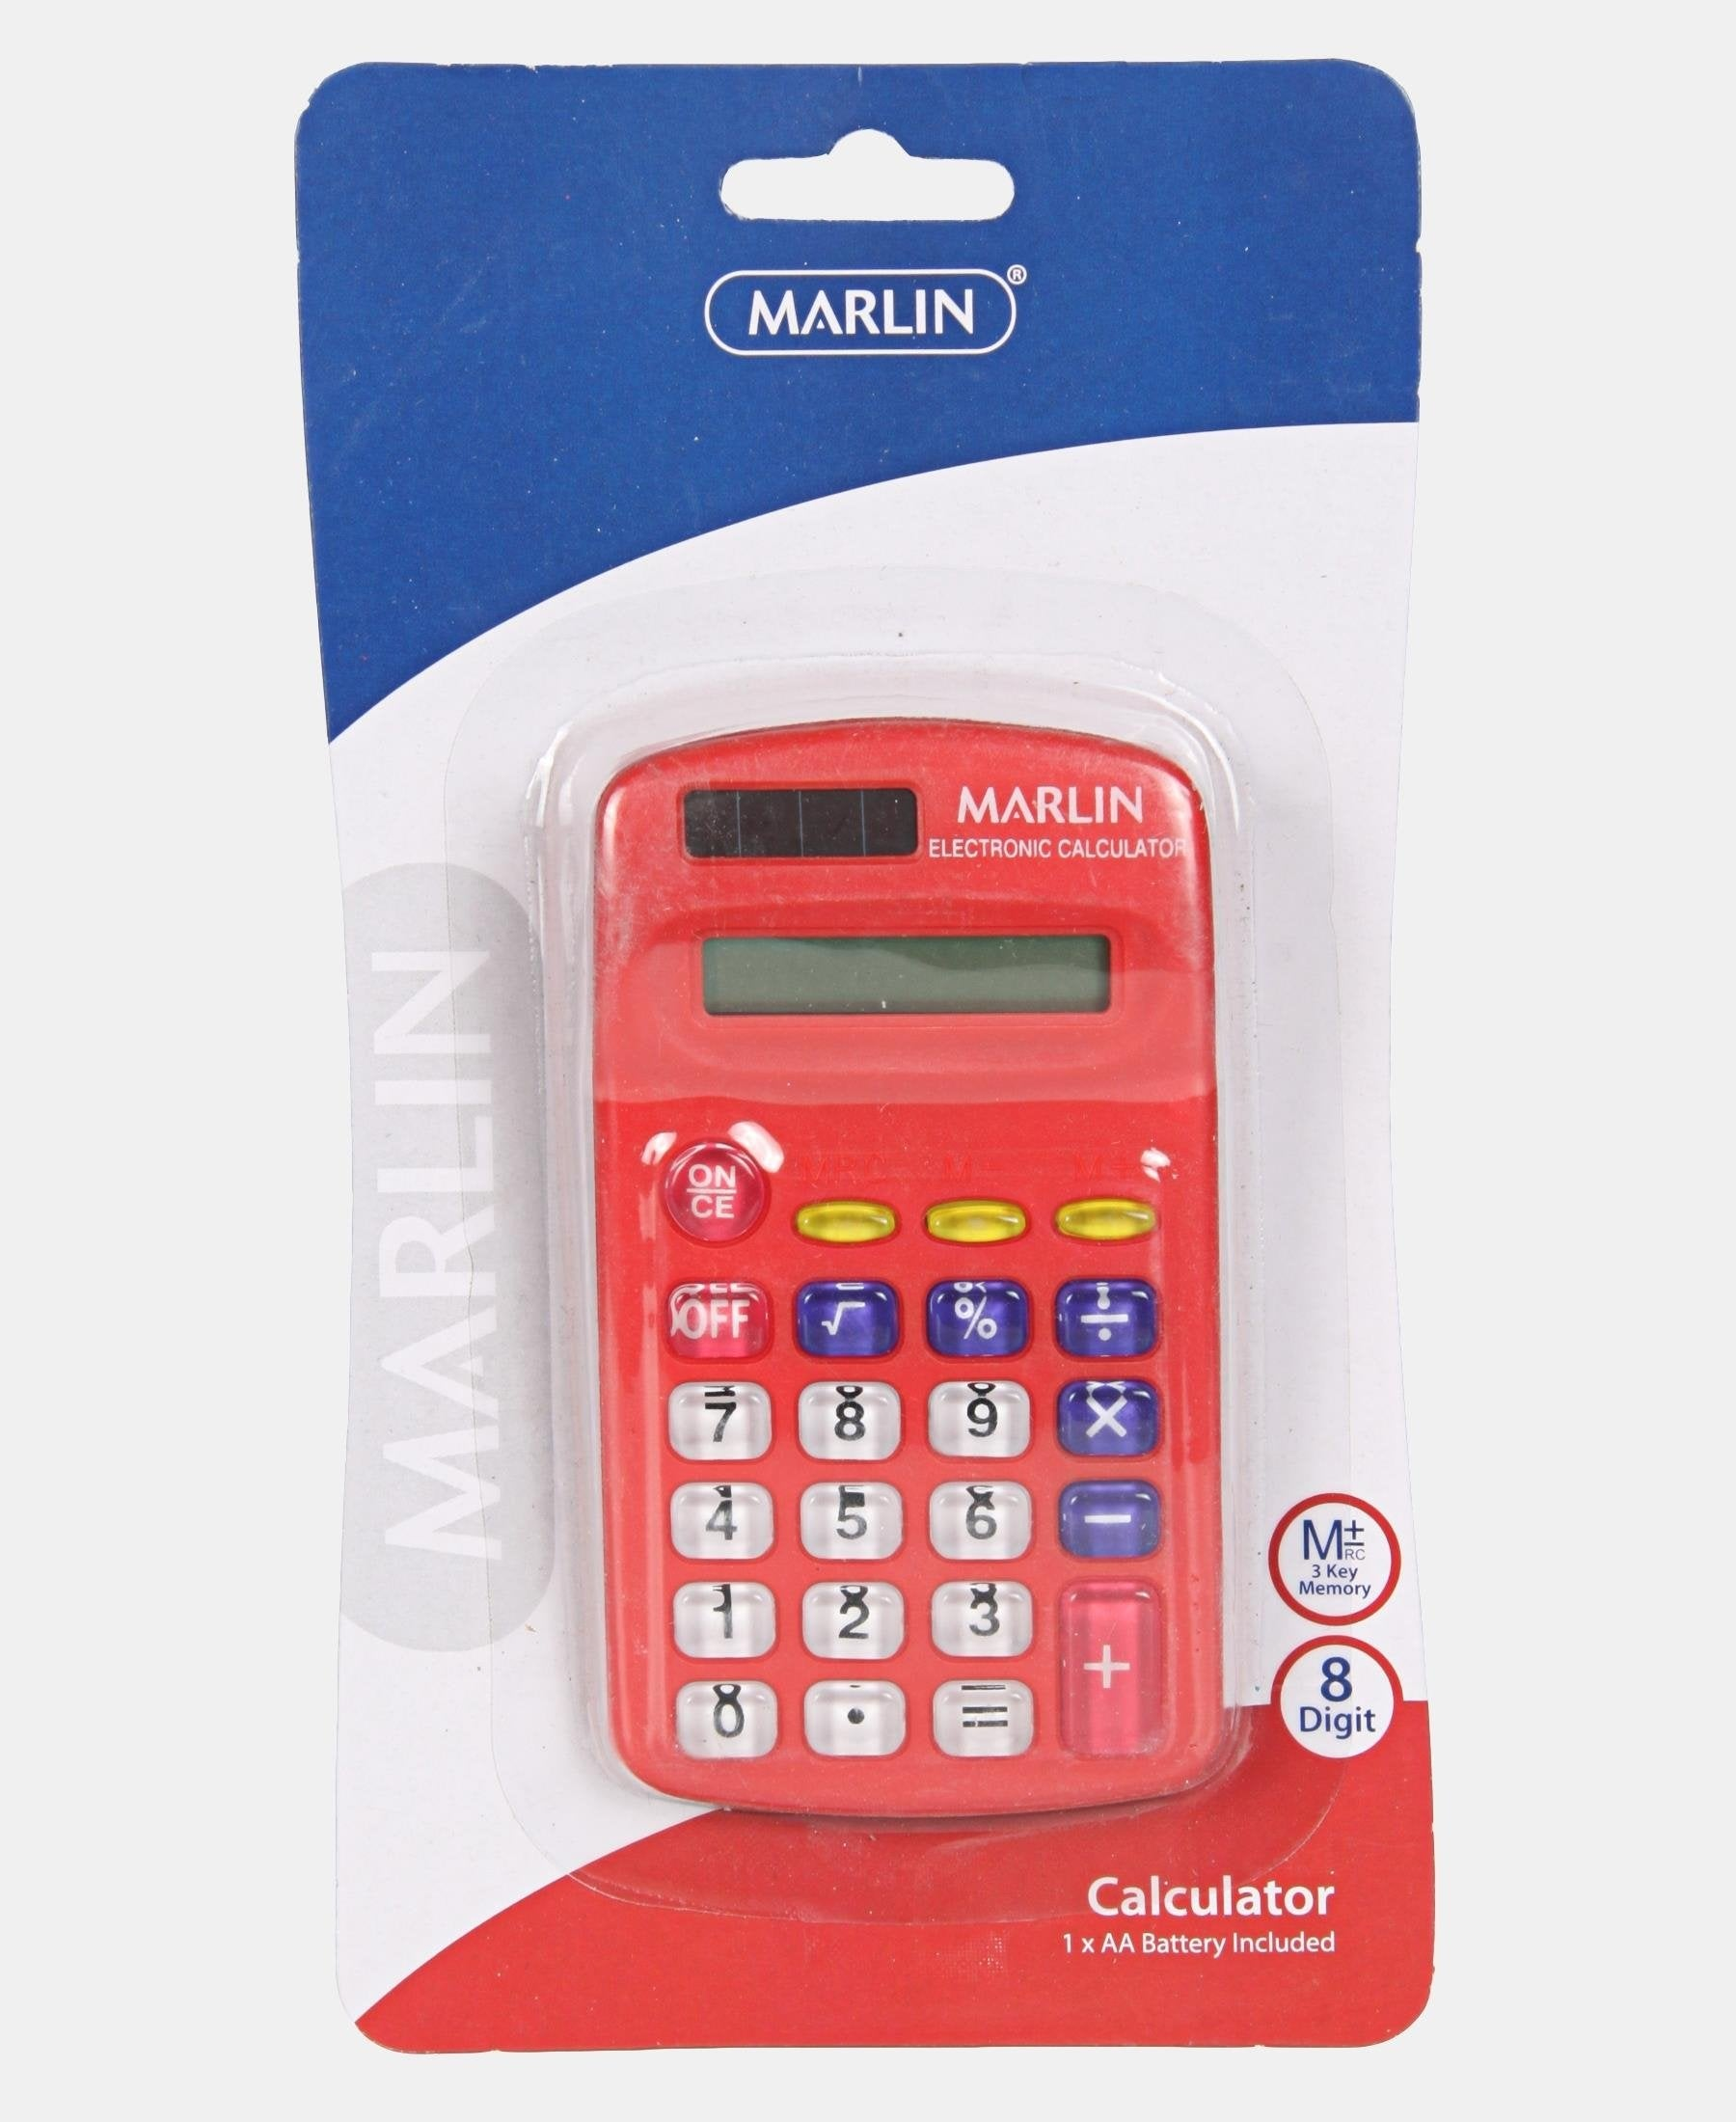 Marlin 8 Digit Electronic Calculator - Red